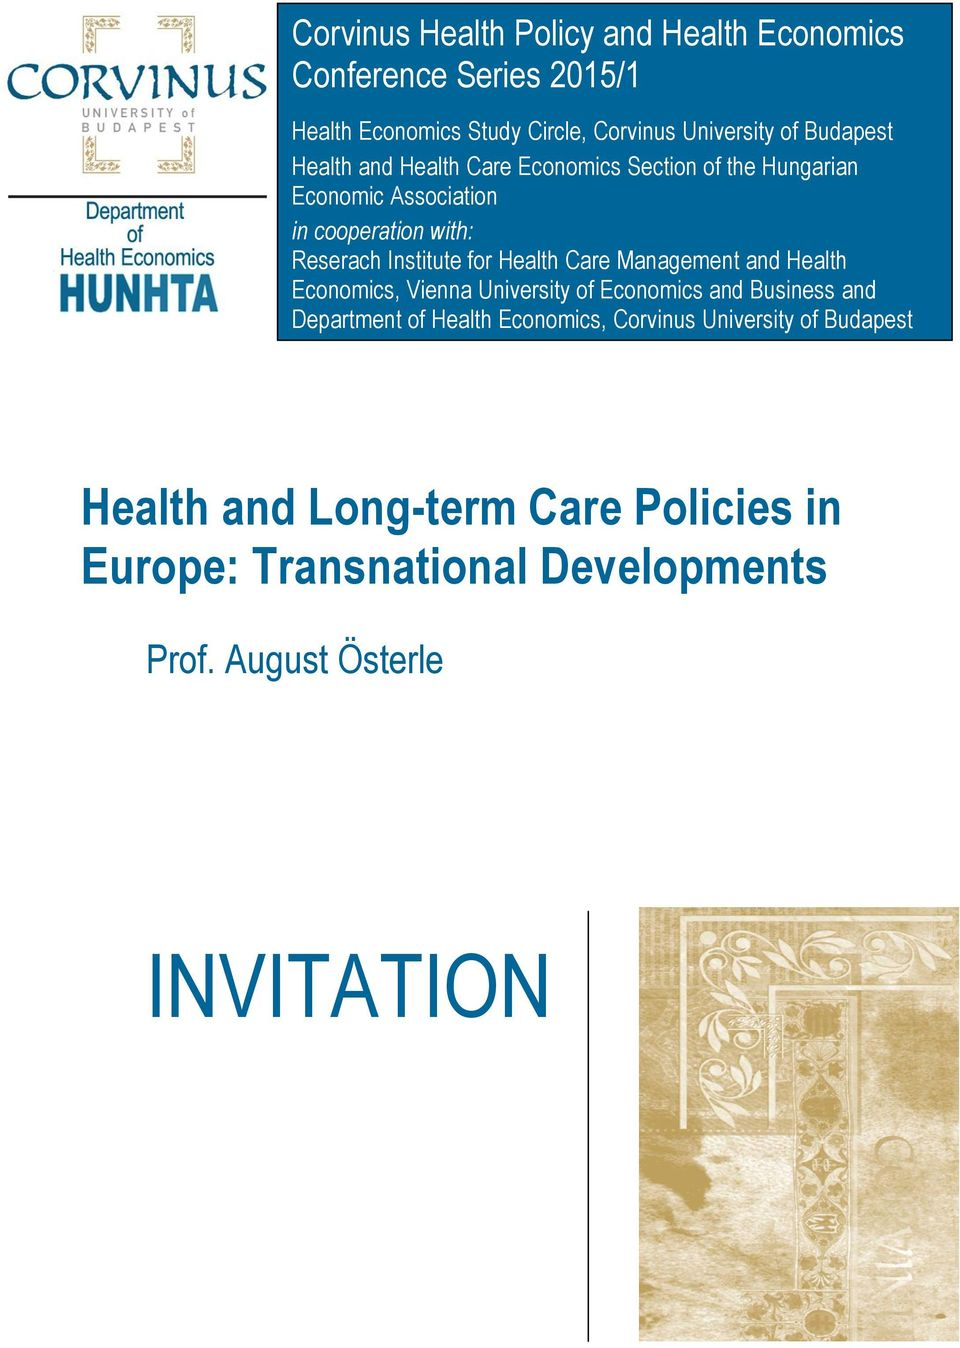 Care Management and Health Economics, Vienna University of Economics and Business and Department of Health Economics,